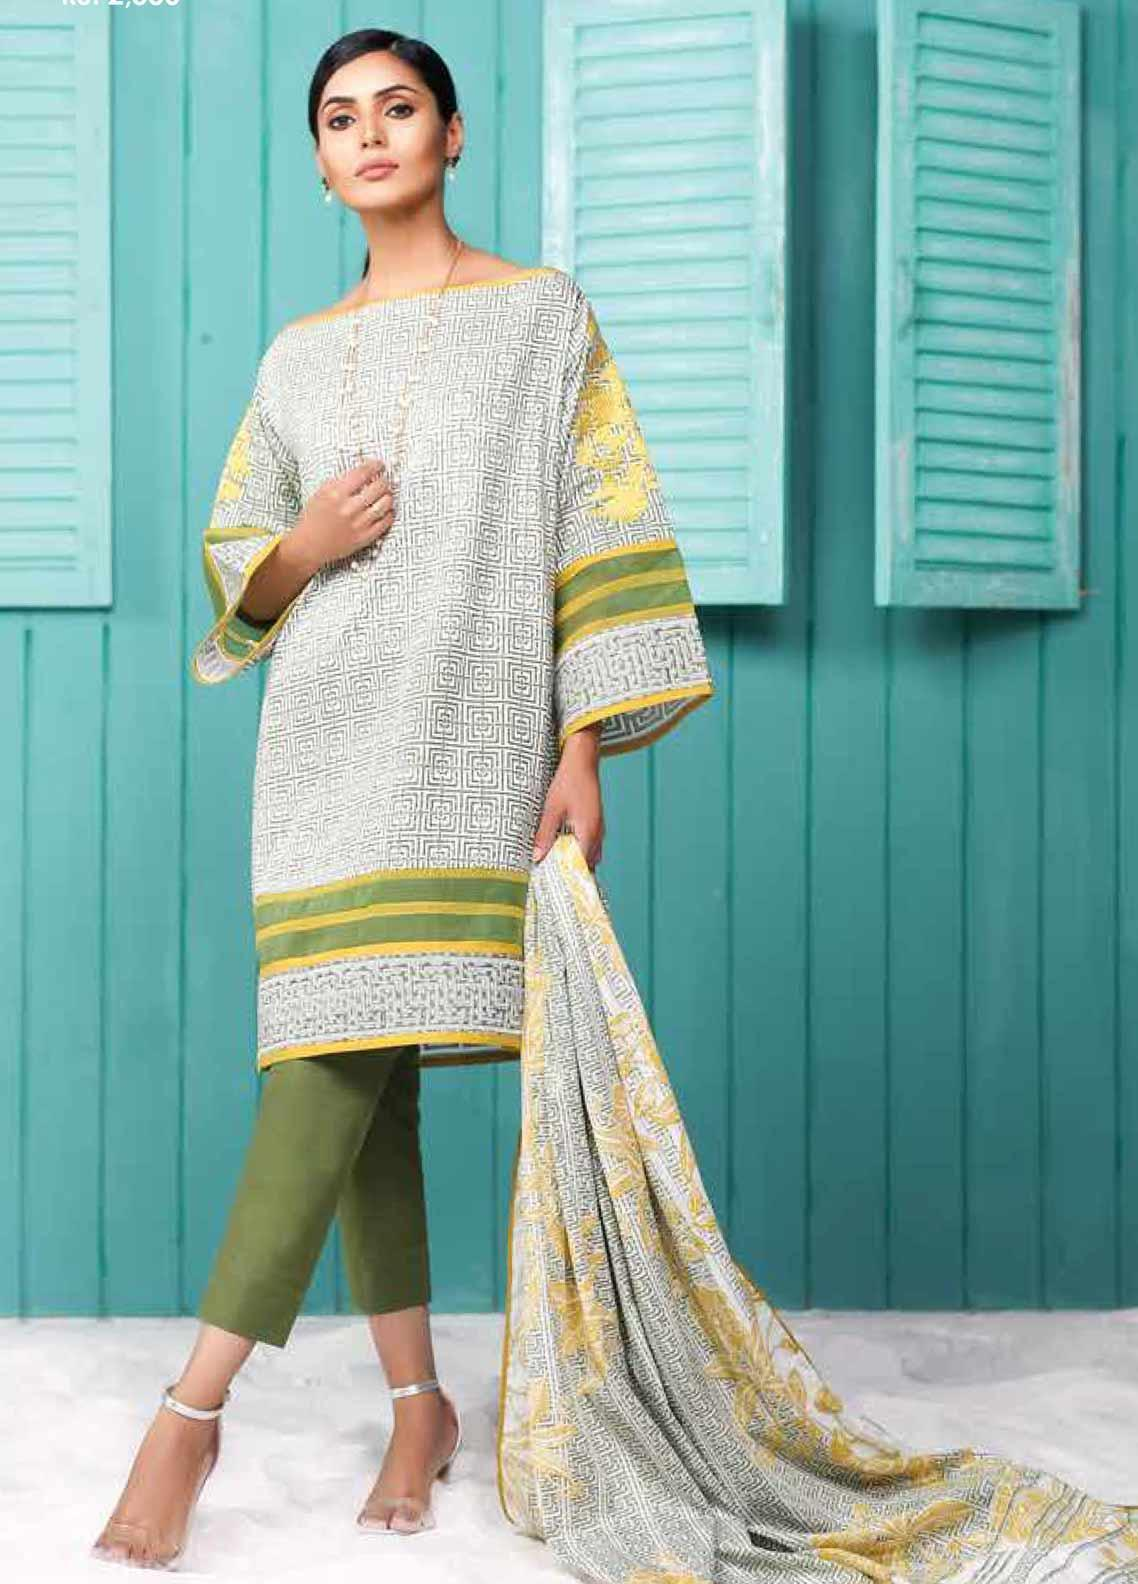 Al Karam Embroidered Lawn Unstitched 2 Piece Suit AK19-L2 13.1 GREEN - Spring / Summer Collection